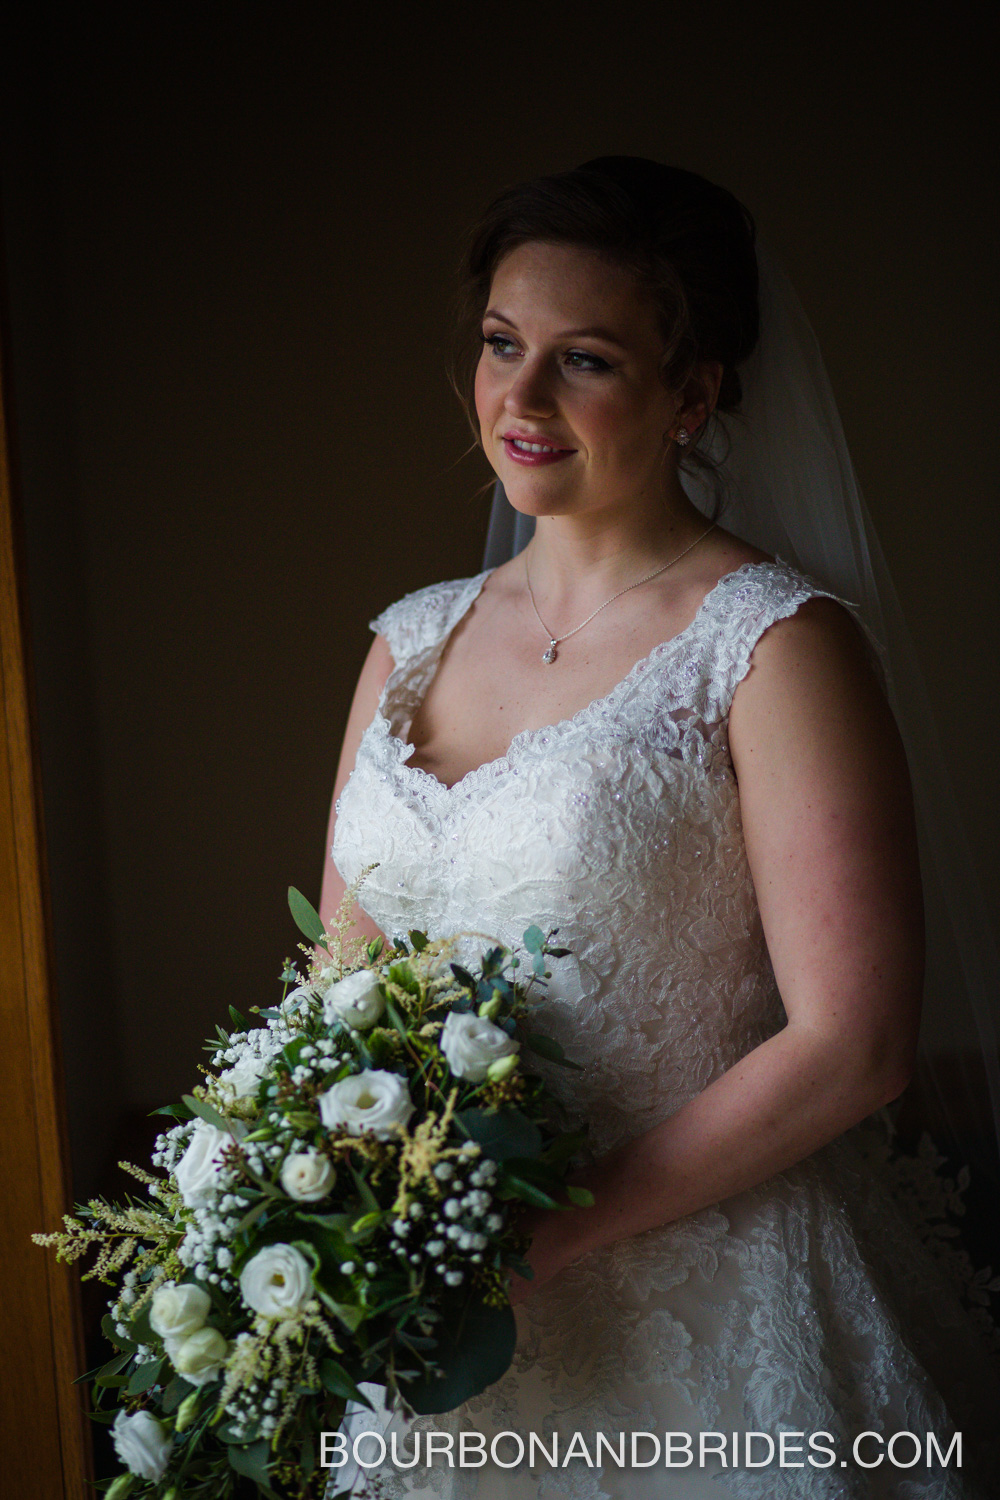 Cincinatti-wedding-bride-window.jpg